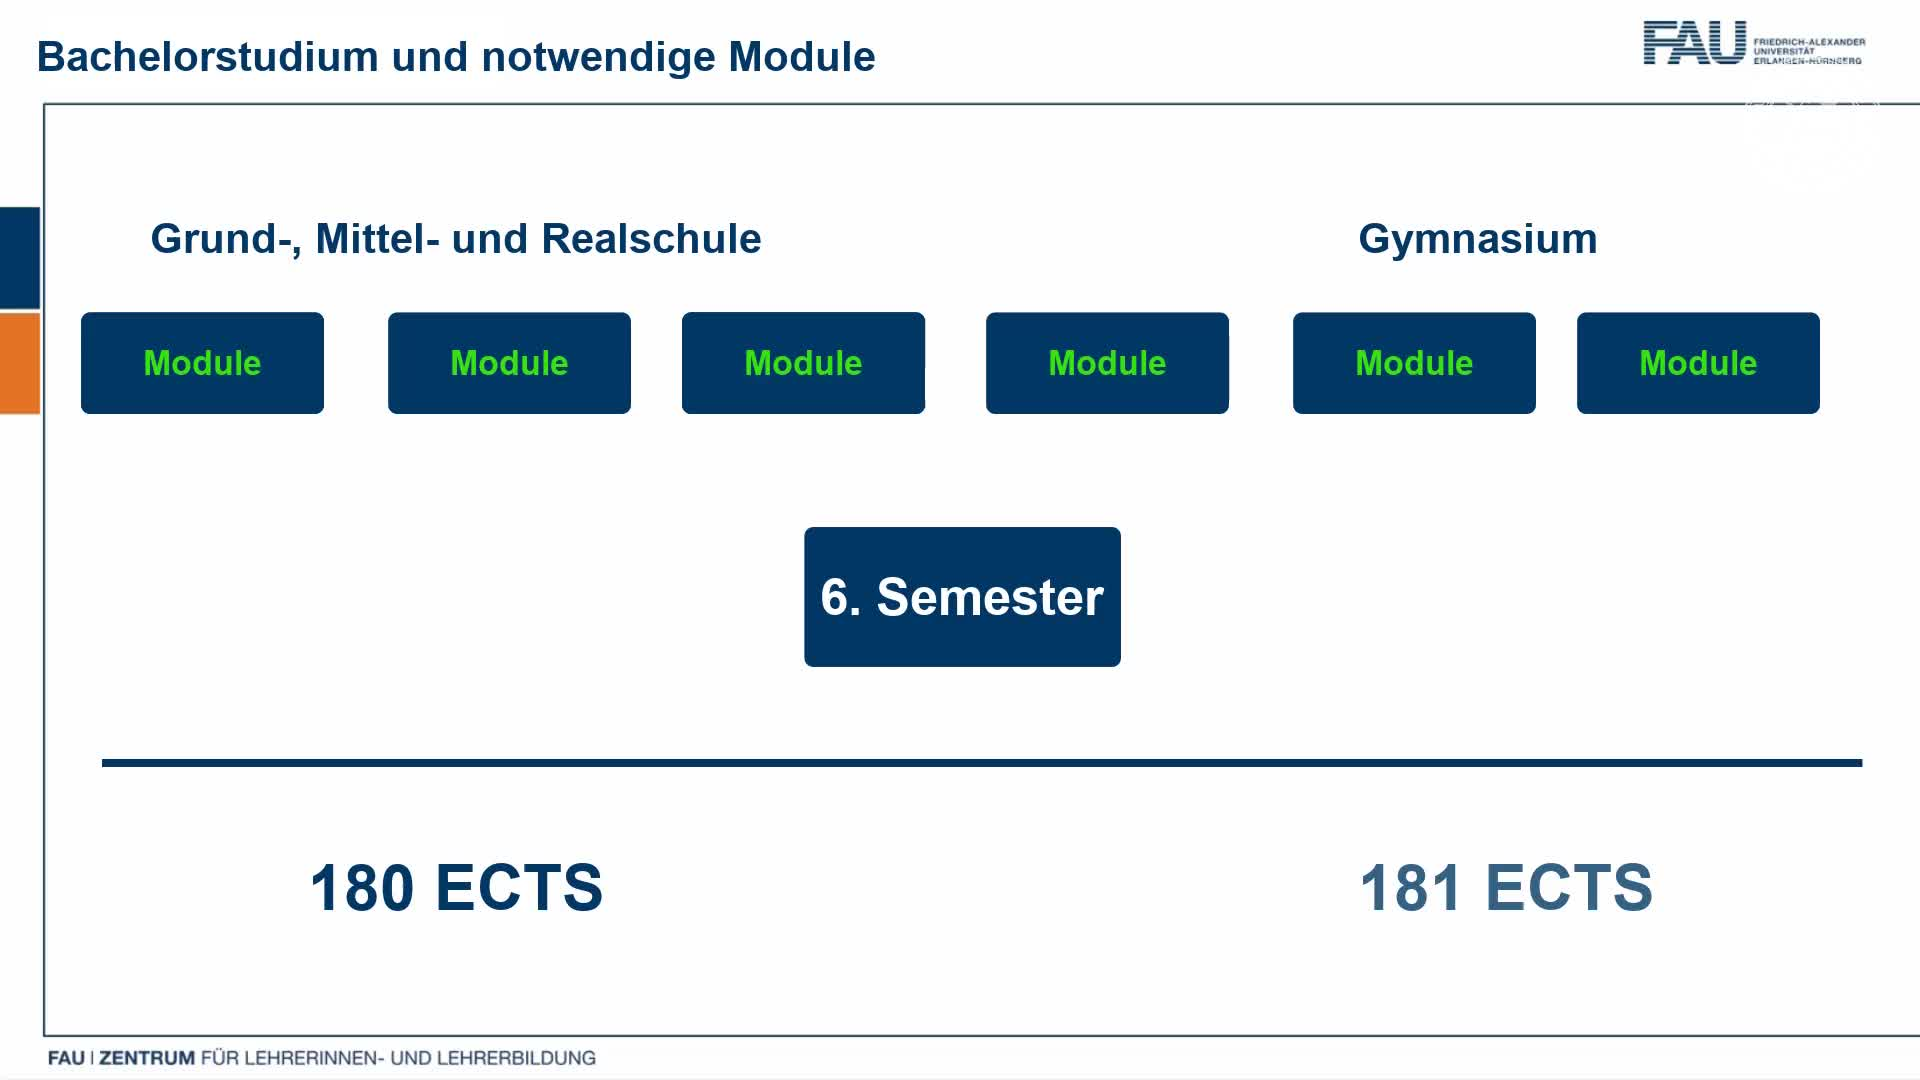 Lehramt | Gymnasium | Realschule | Bachelor | ZfL preview image